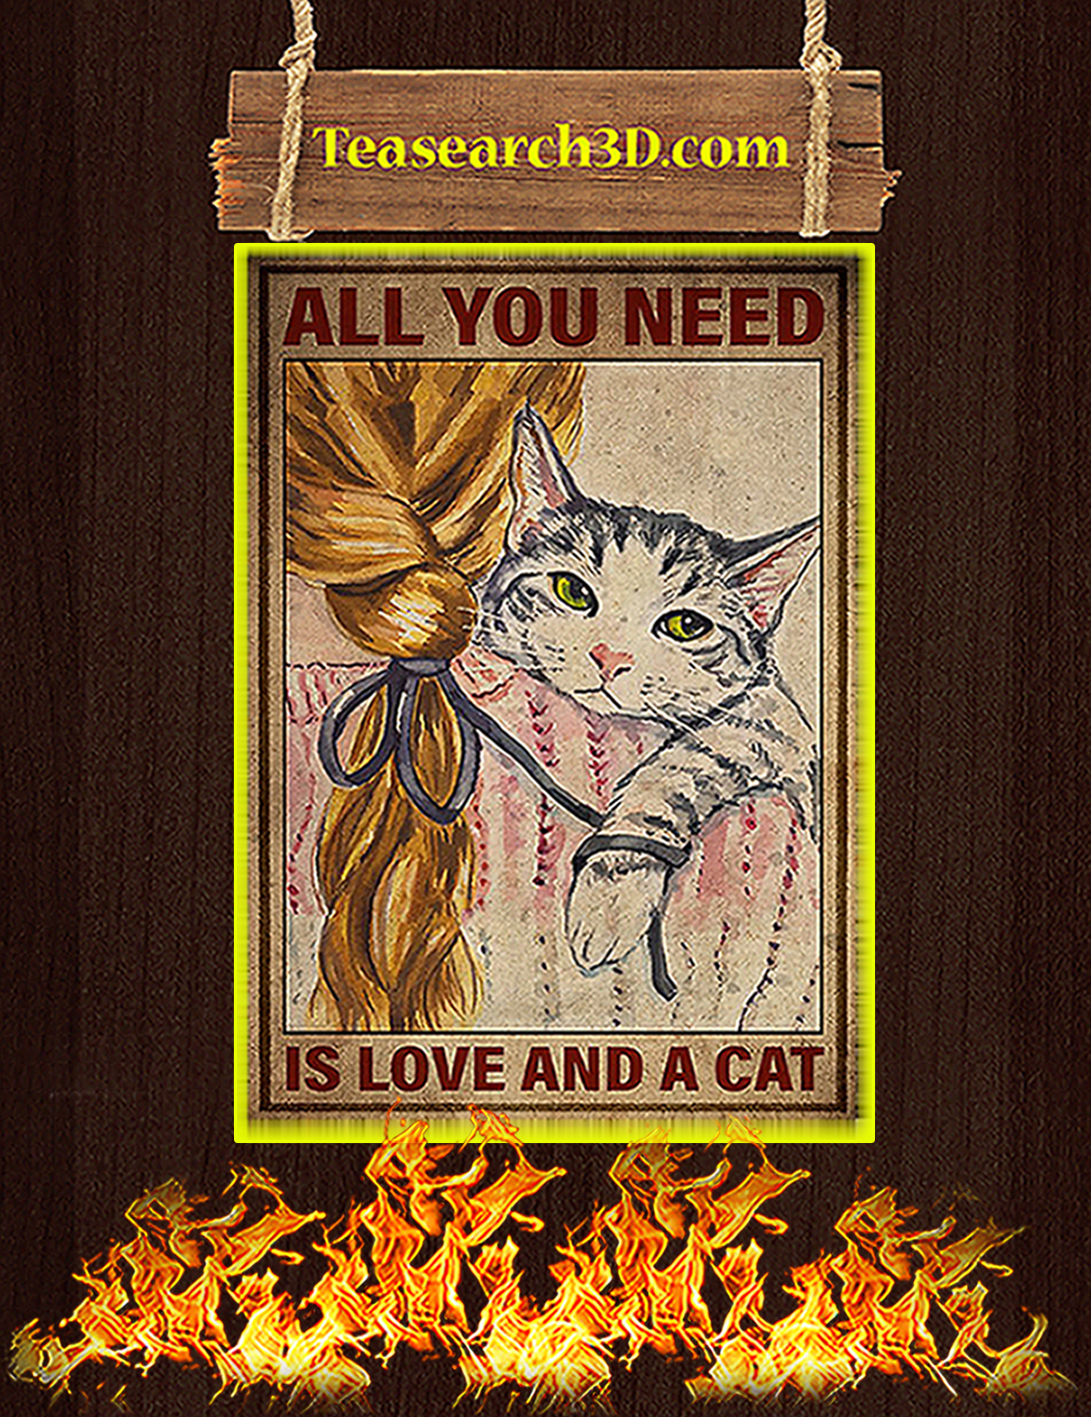 All you need is a love and a cat poster A2